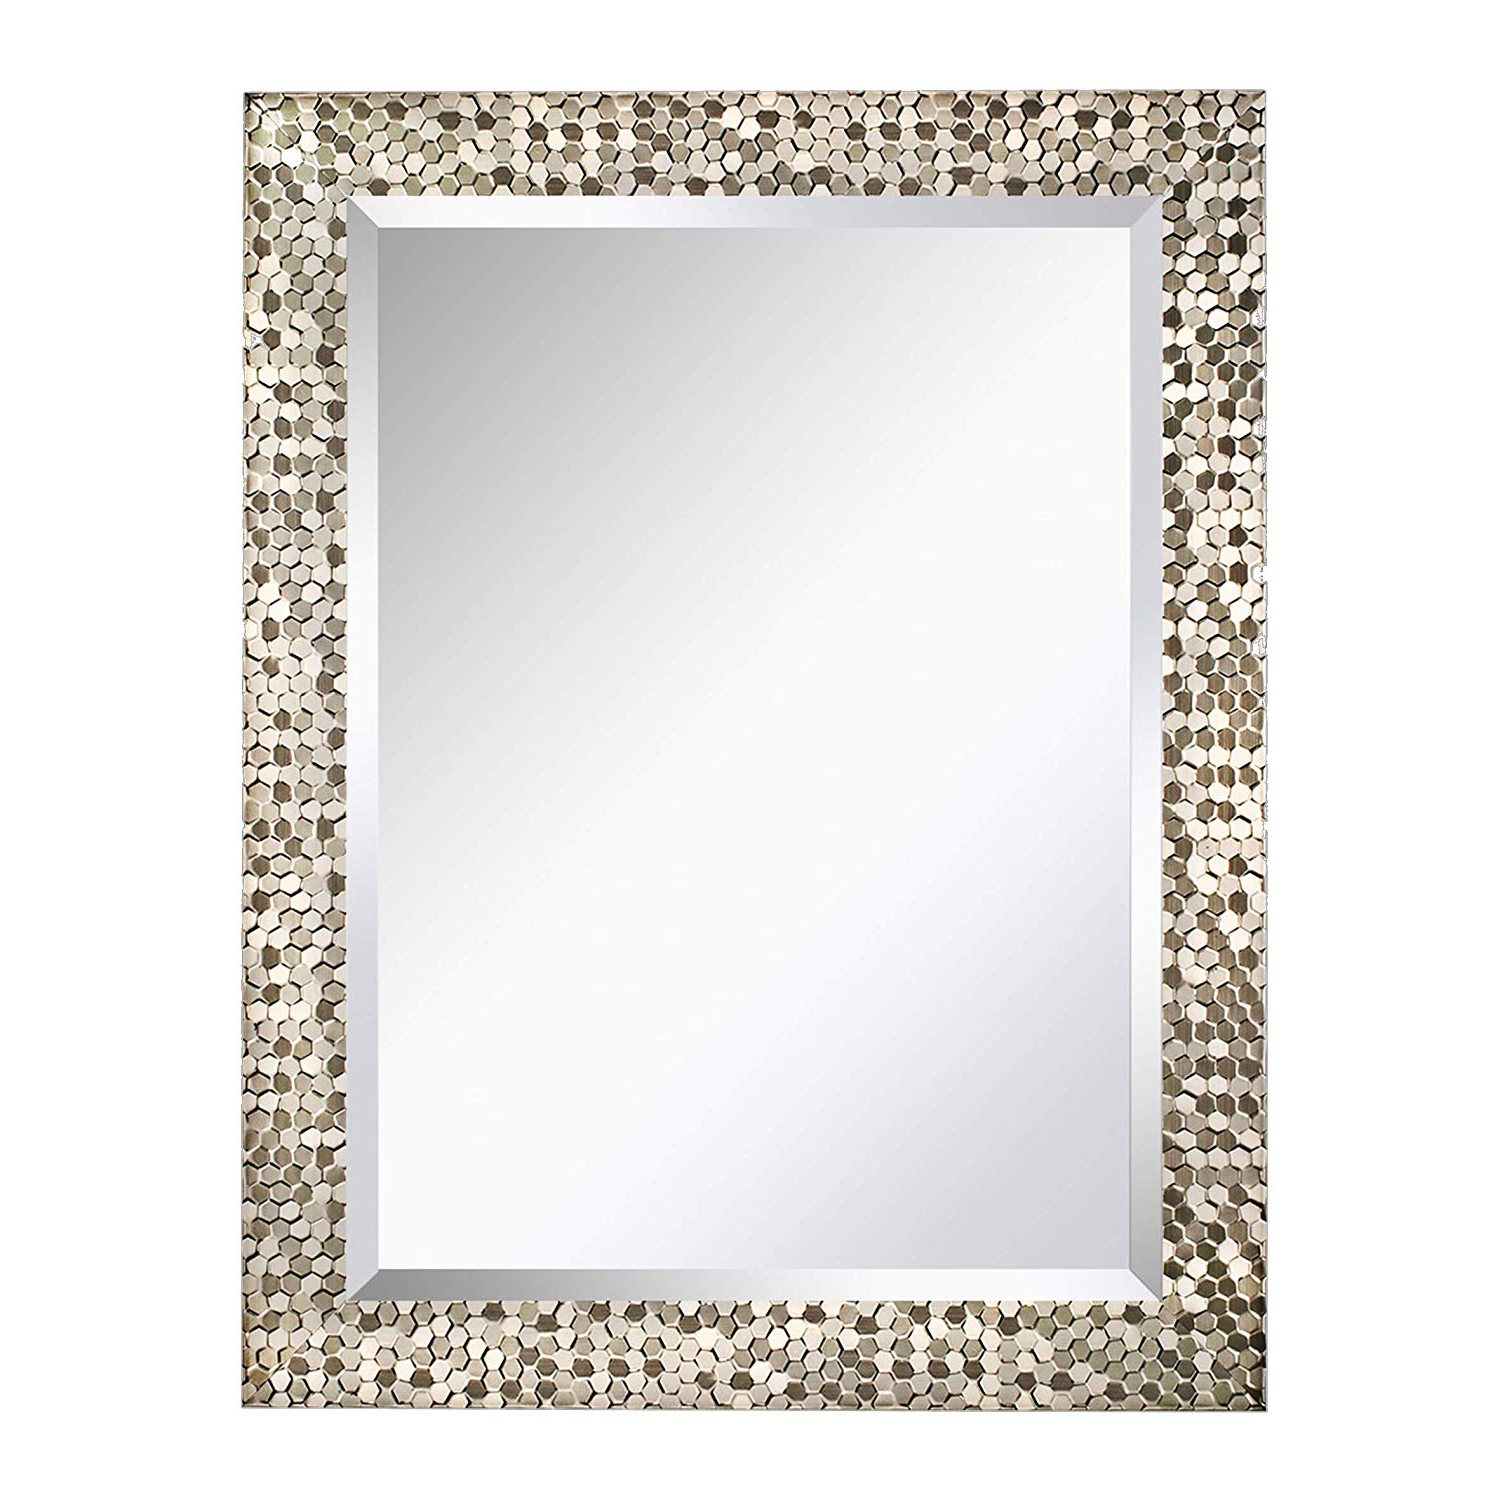 "Popular Mirror Trend 24"" X 32"" Square Beveled Mirrors For Wall Mirrors For Living  Room Large Bathroom Mirrors Wall Mounted Mosaic Design Mirror For Wall With Large Decorative Wall Mirrors (View 18 of 20)"